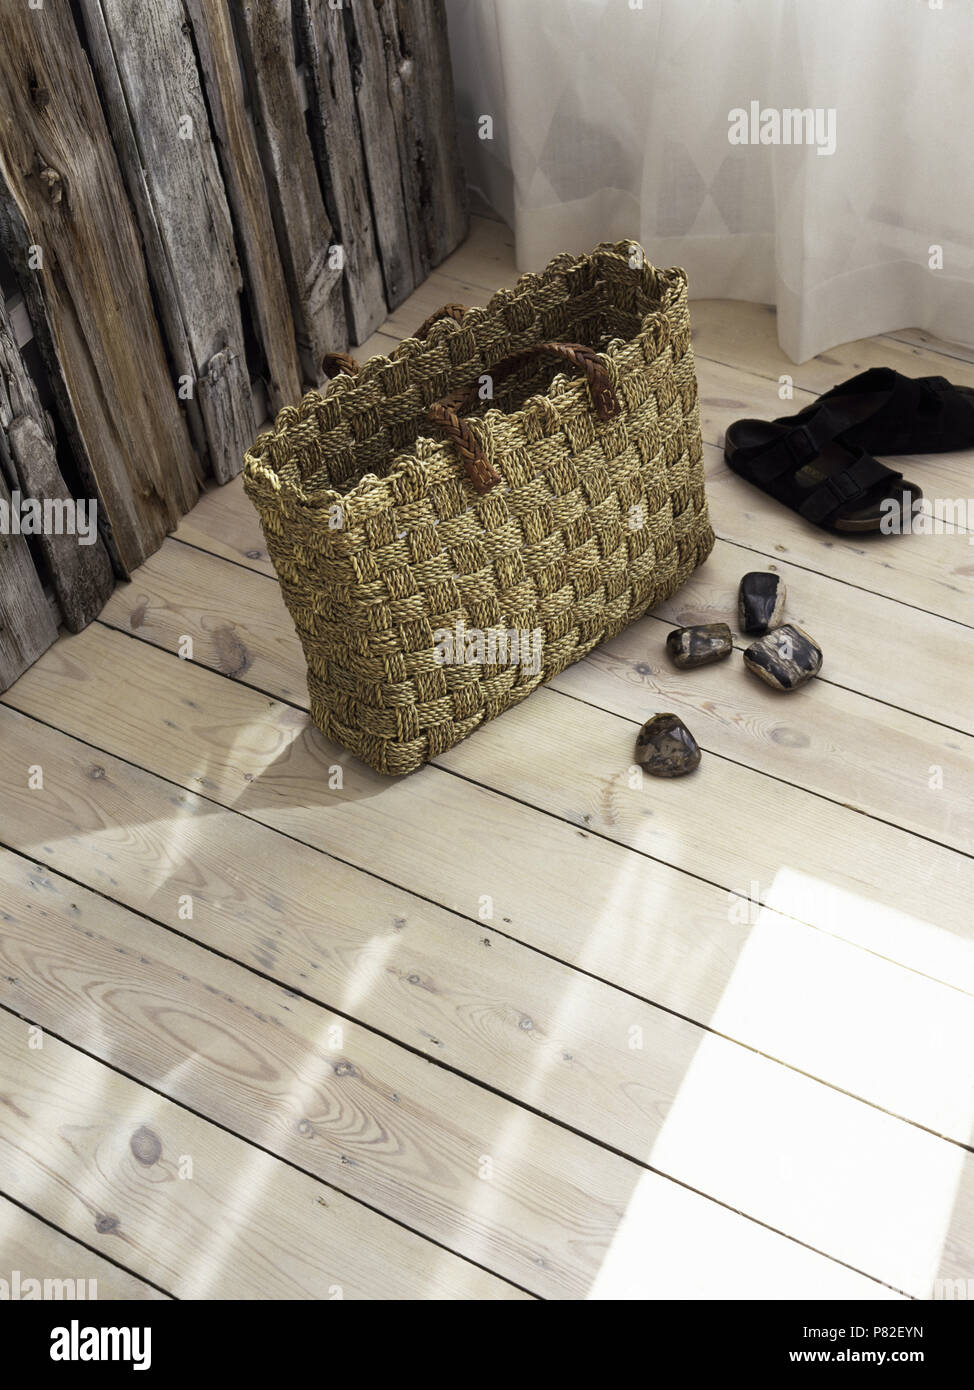 Woven sisal basket on newly fitted pale wood floorboards beside rustic wooden panelling Stock Photo